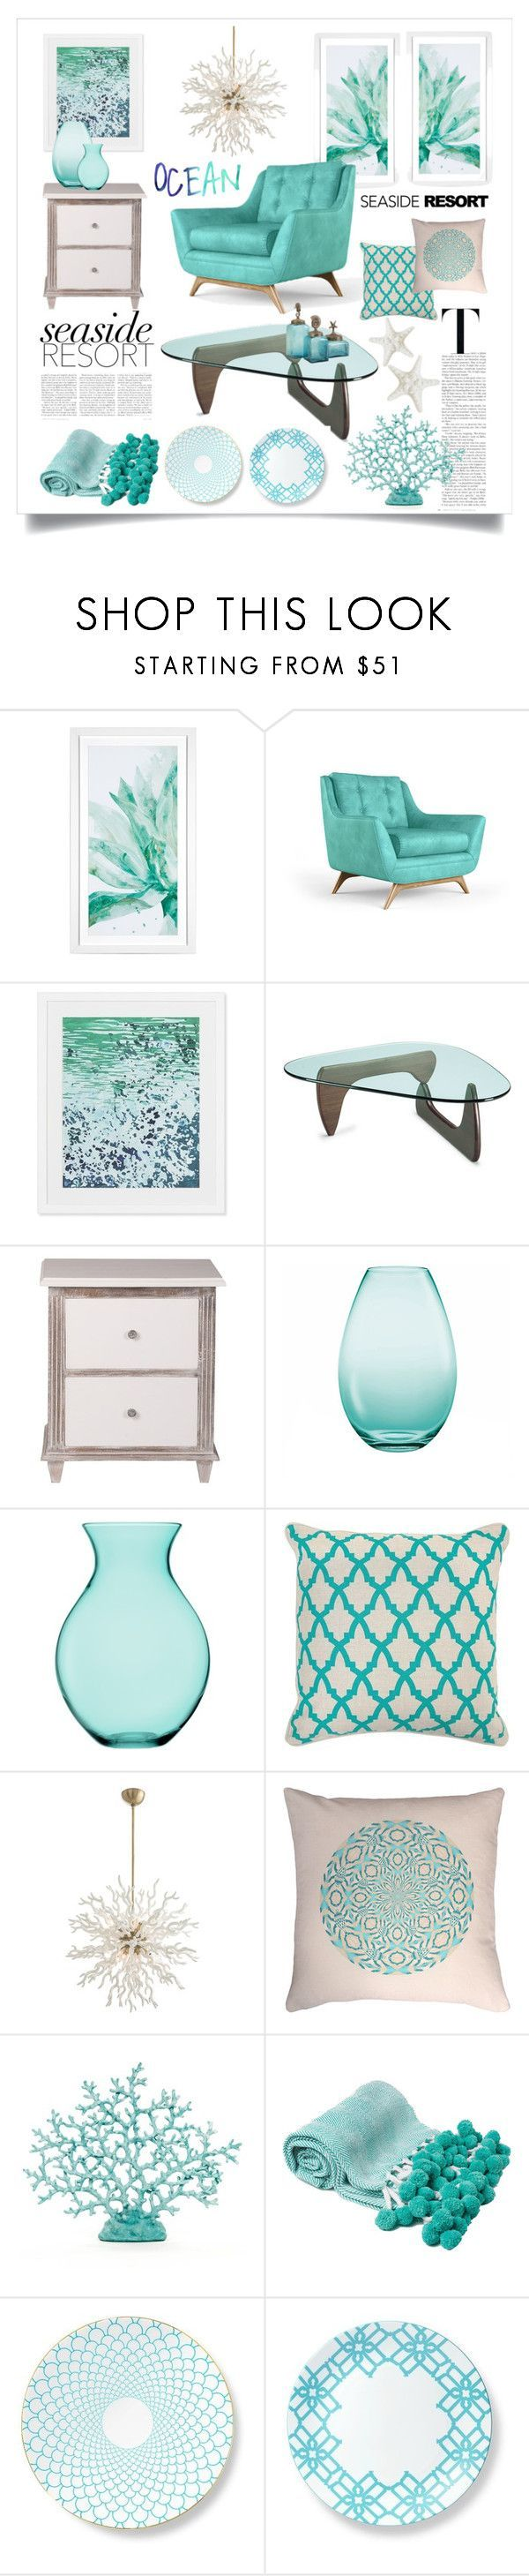 """Seaside Resort"" by miss-image ❤ liked on Polyvore featuring interior, interiors, interior design, home, home decor, interior decorating, Joybird Furniture, Williams-Sonoma, Holmegaard and LSA International"